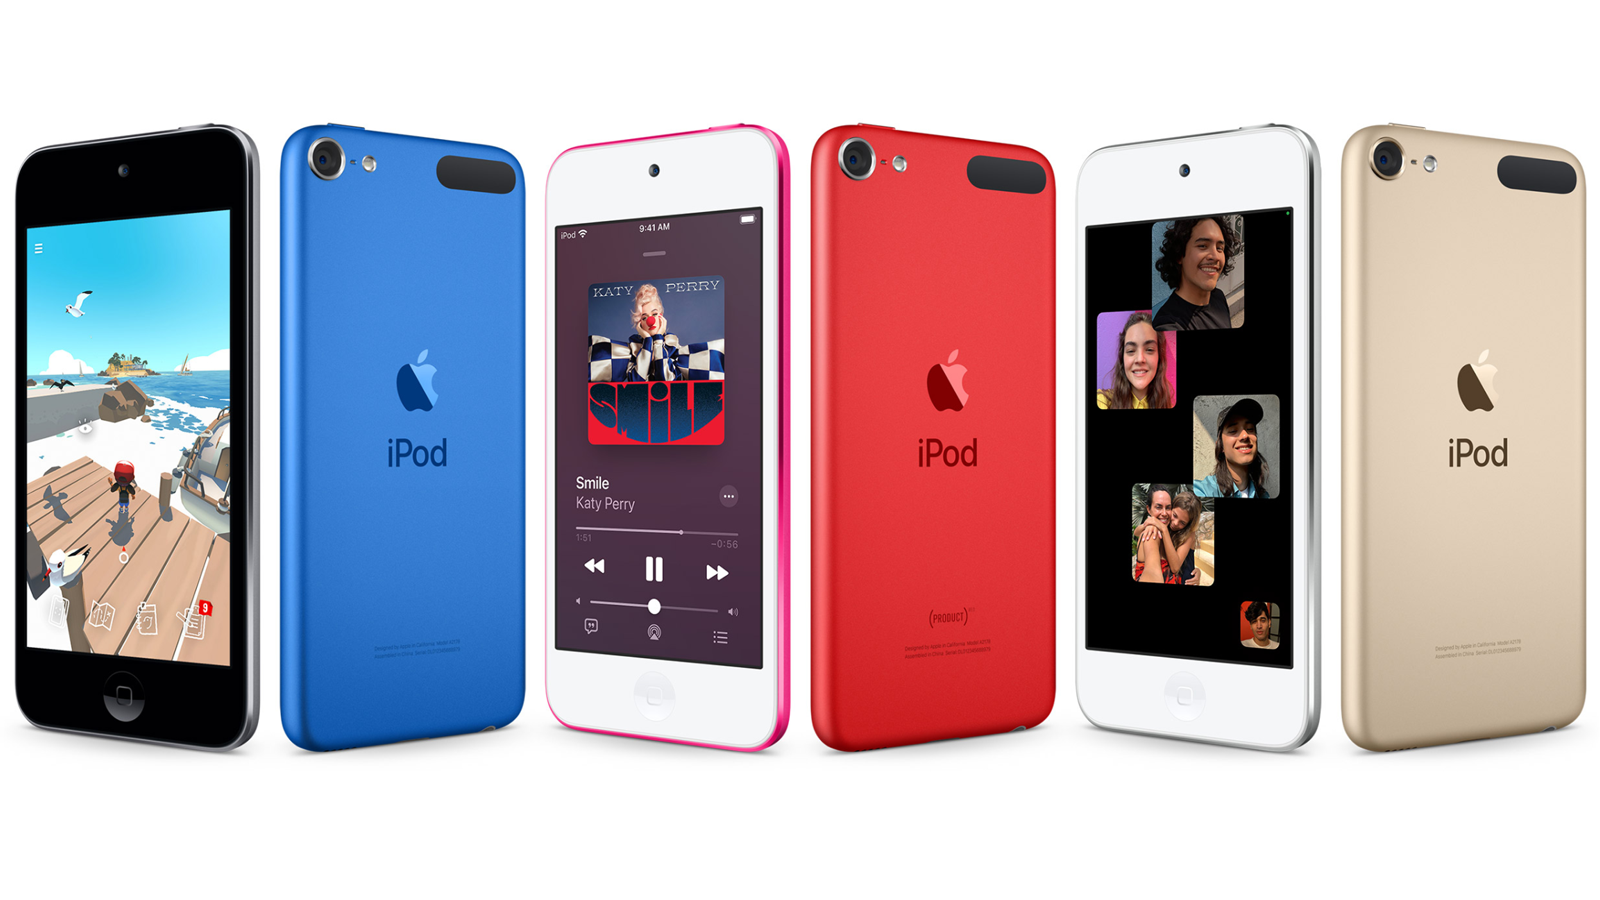 Several iPod Touch devices in three colors displaying the front and rear of the device